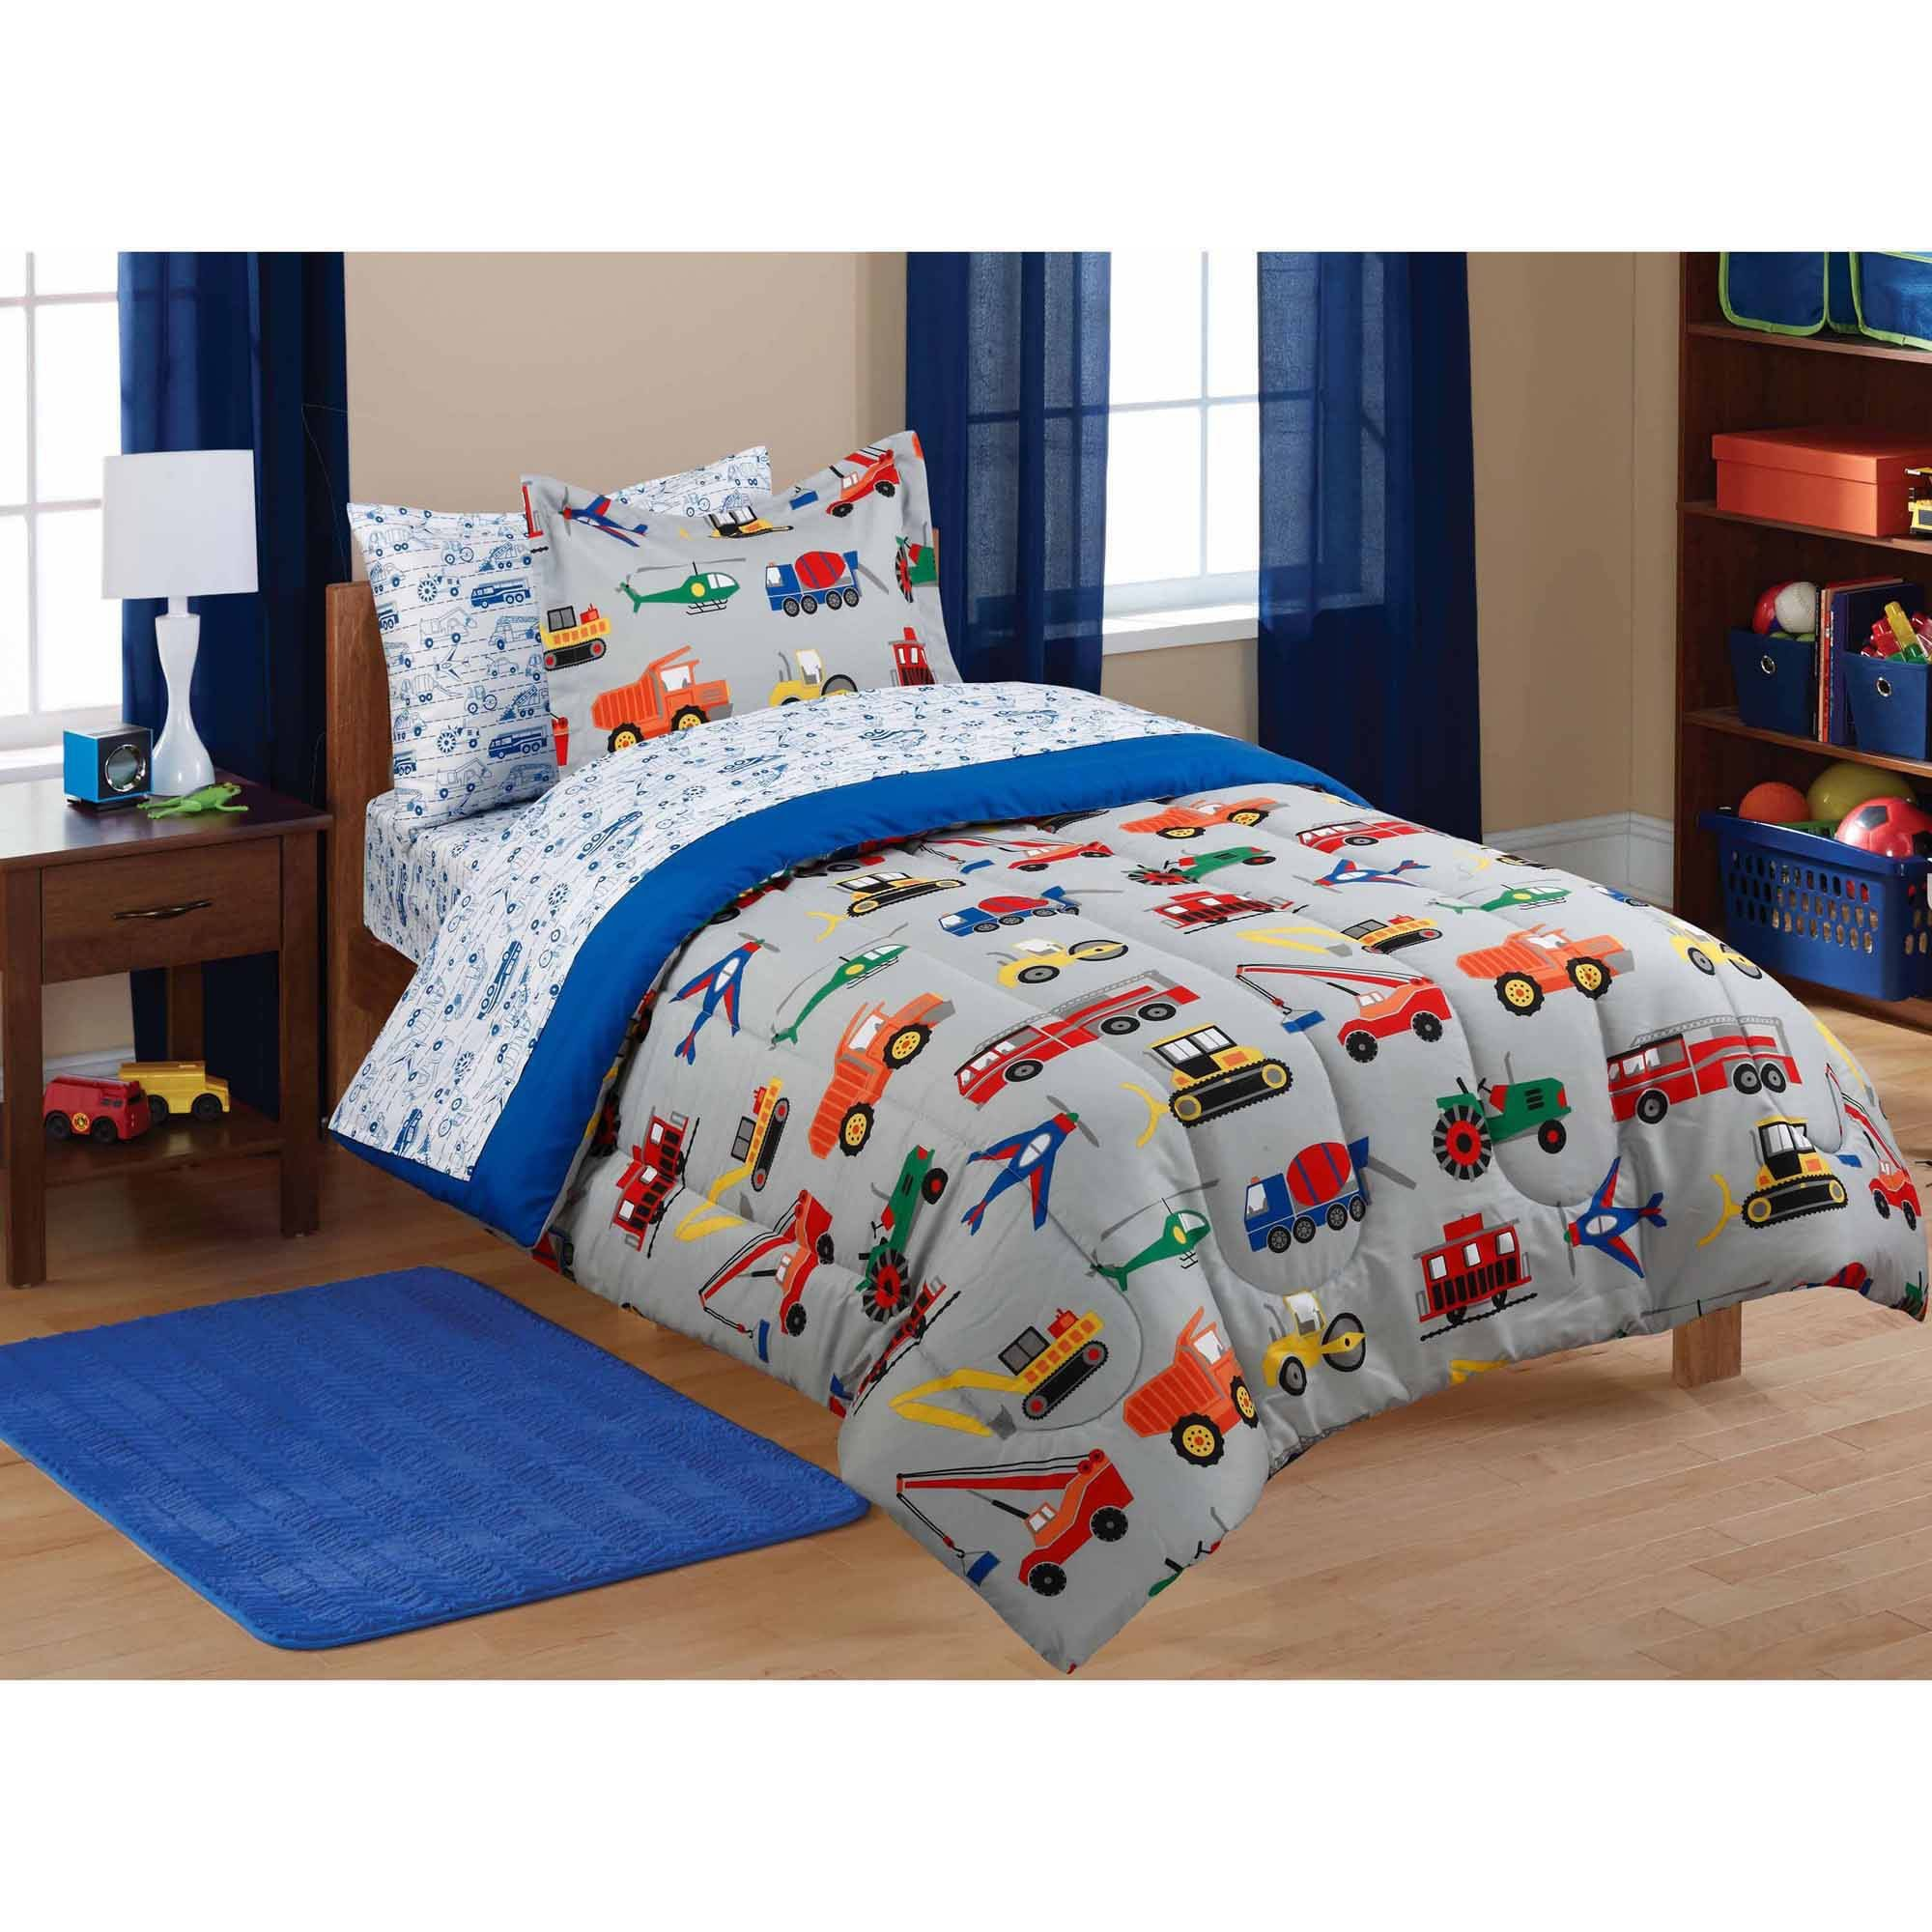 MS 5pc Boy Blue Green Red Car Truck Transportation Twin Comforter Set (5pc Bed in a Bag)